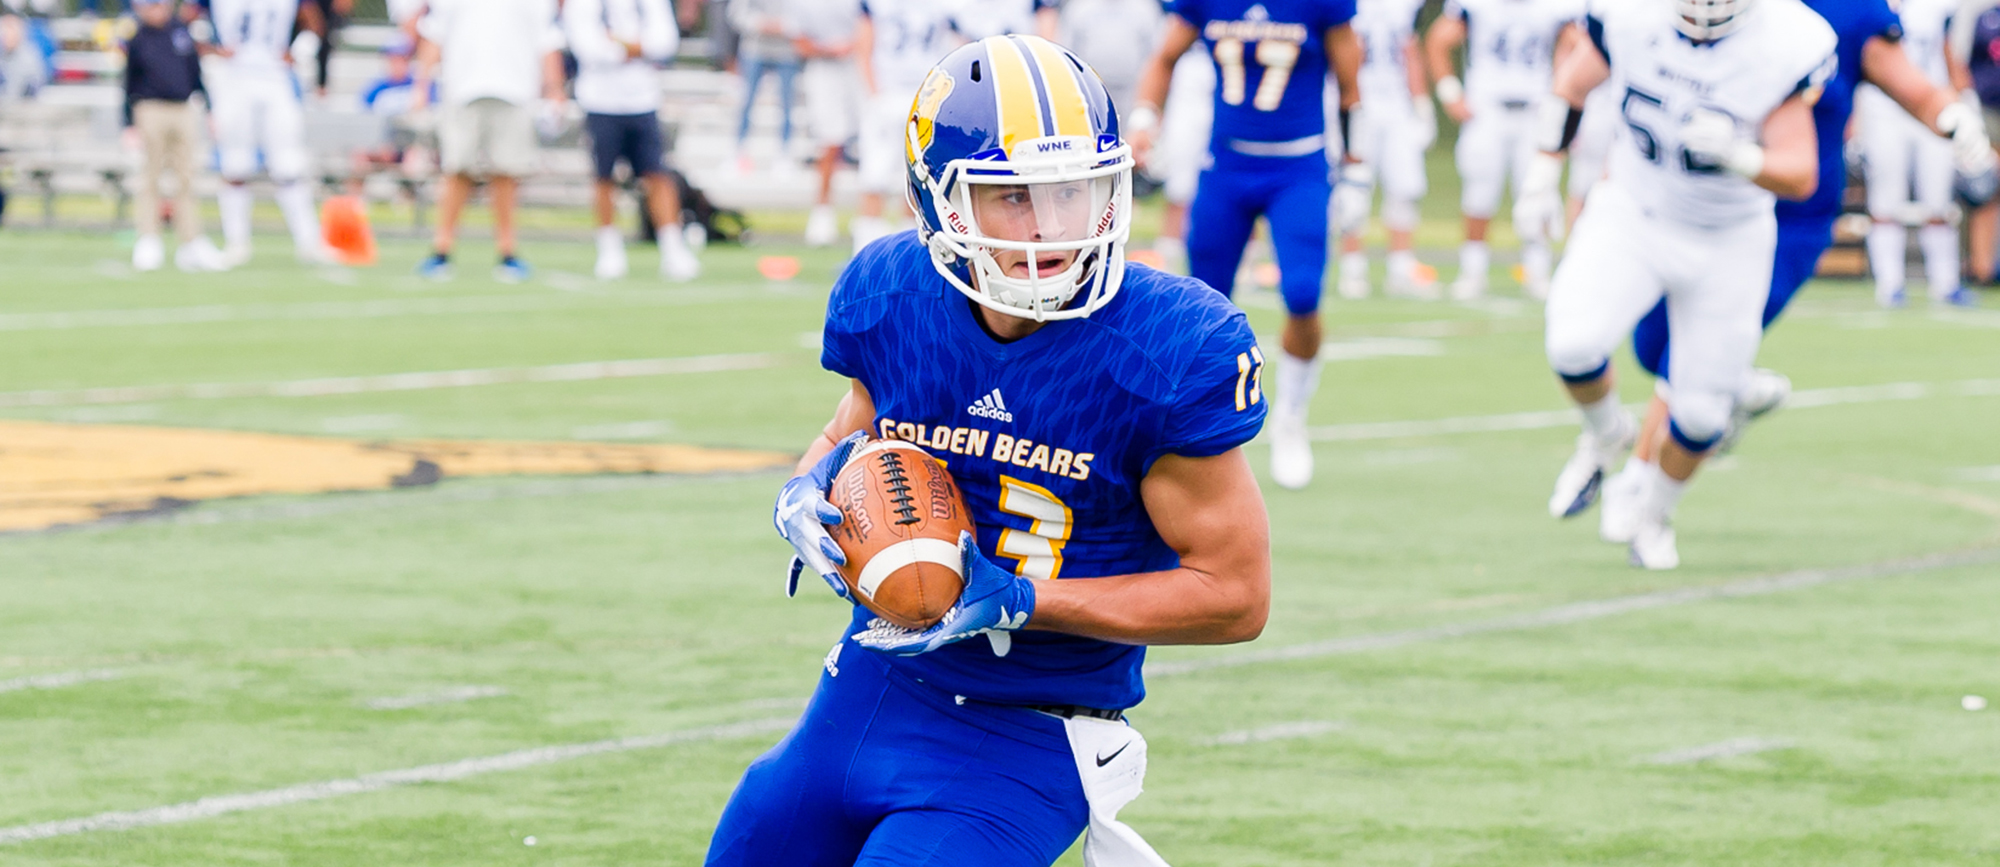 Sophomore receiver Adam Razza caught three passes for a career-high 134 yards and one touchdown in Western New England's 56-21 triumph over Curry on Saturday. (Photo by Bryan Hewitt)